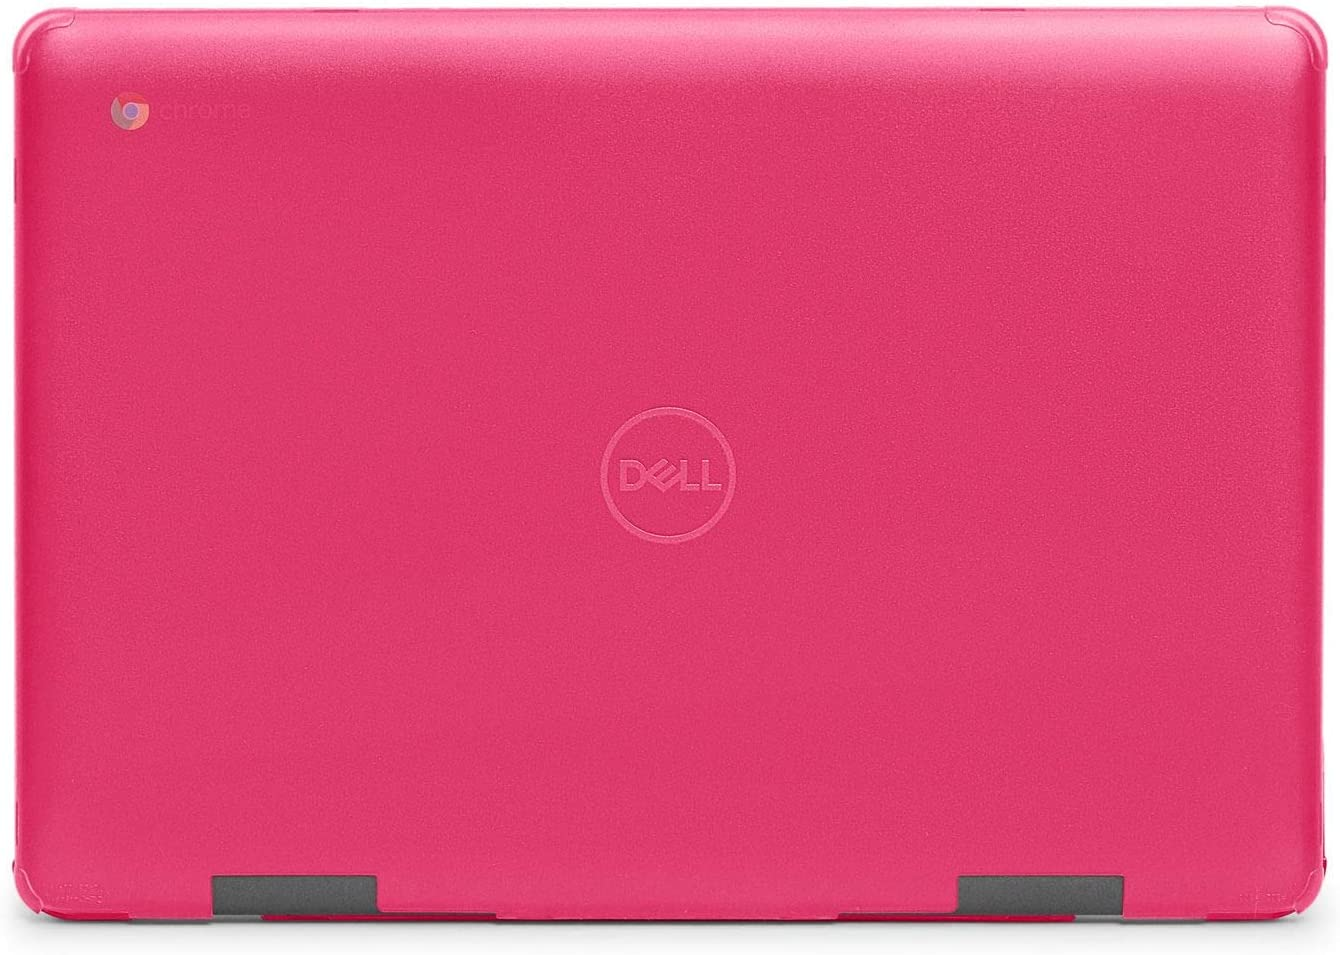 mCover Hard Shell Case for 2020 14'' Dell Latitude 5400 Chromebook / 5410 Windows Computer (NOT Compatible with Dell C11 3181/3100/7486 2in1, 3400/3120/3180/3189/5190 Series) Dell LC5400 Pink